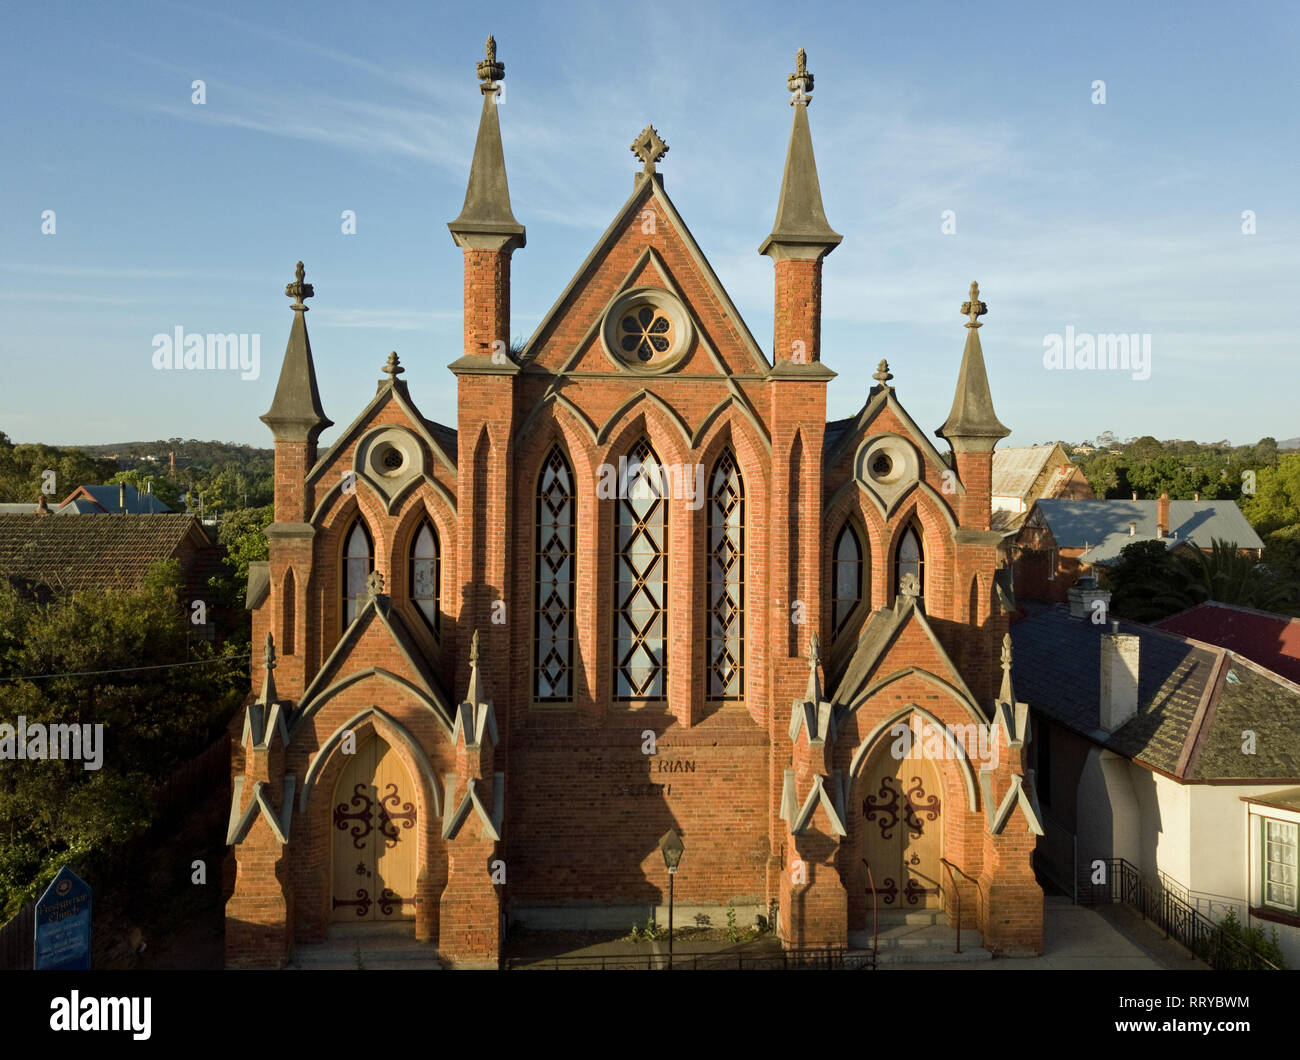 Small town church Australia. Exterior view church building, church spire, facade and windows. Captured with aerial photography in Victoria, Australia. - Stock Image